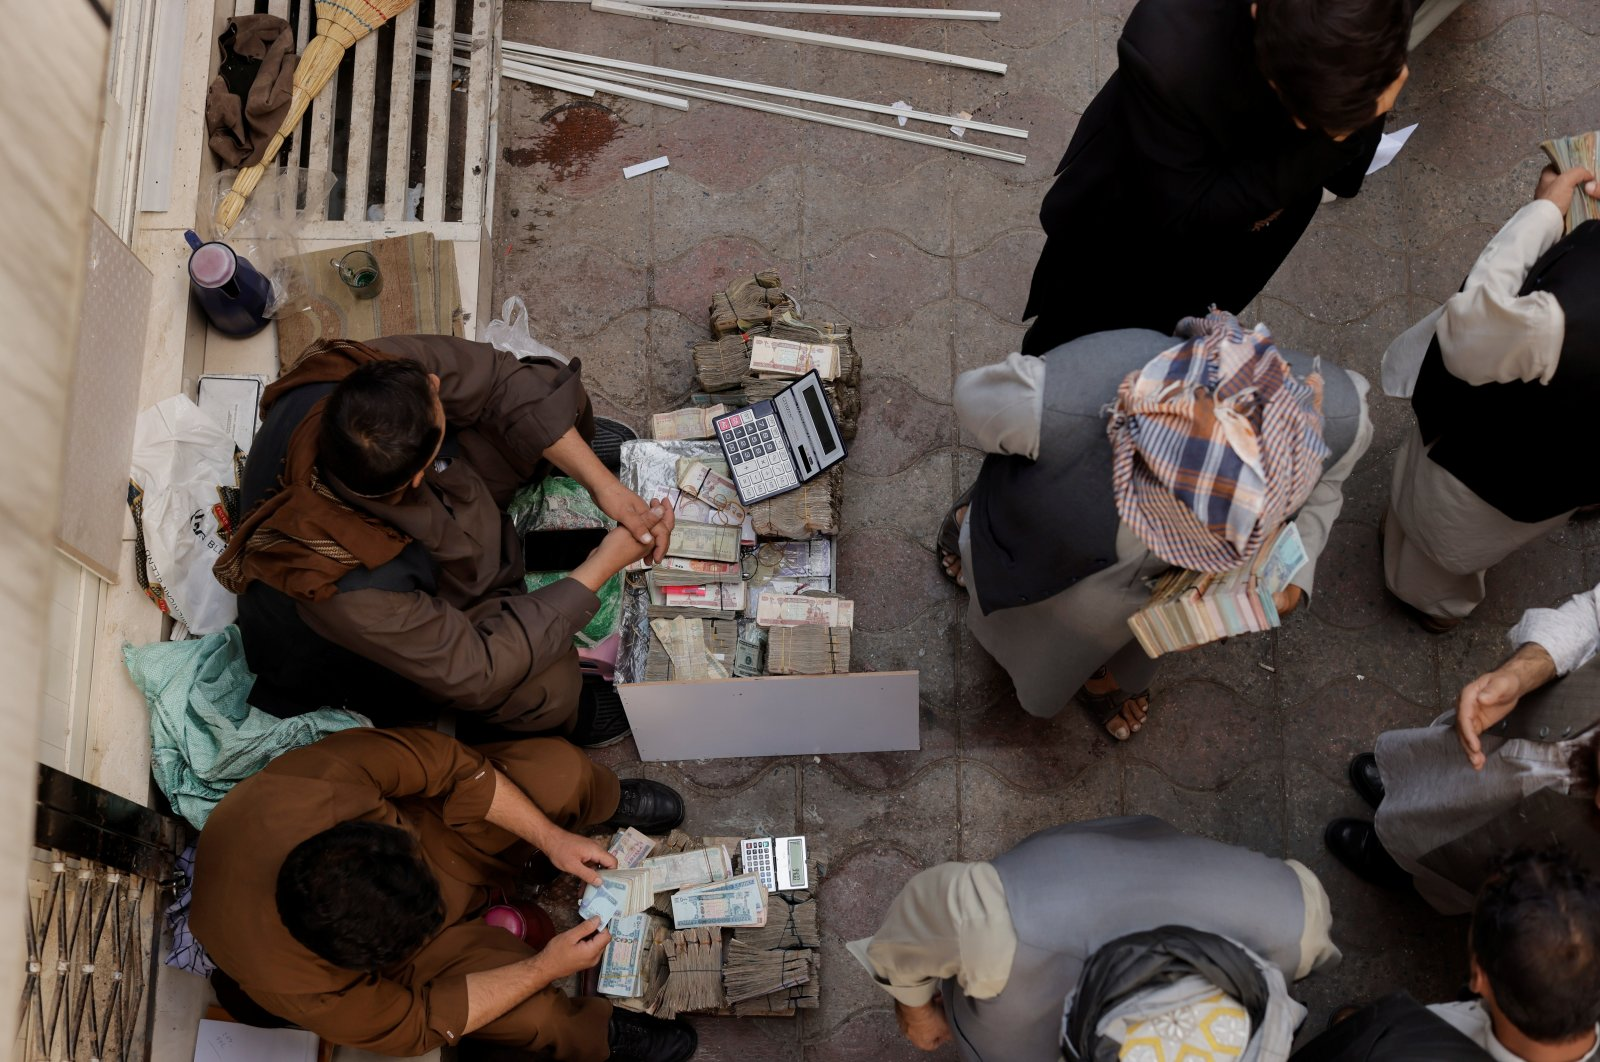 Afghan men sit next to stacks of banknotes as people exchange money at a currency exchange market in Kabul, Afghanistan, Oct. 7, 2021. (REUTERS Photo)